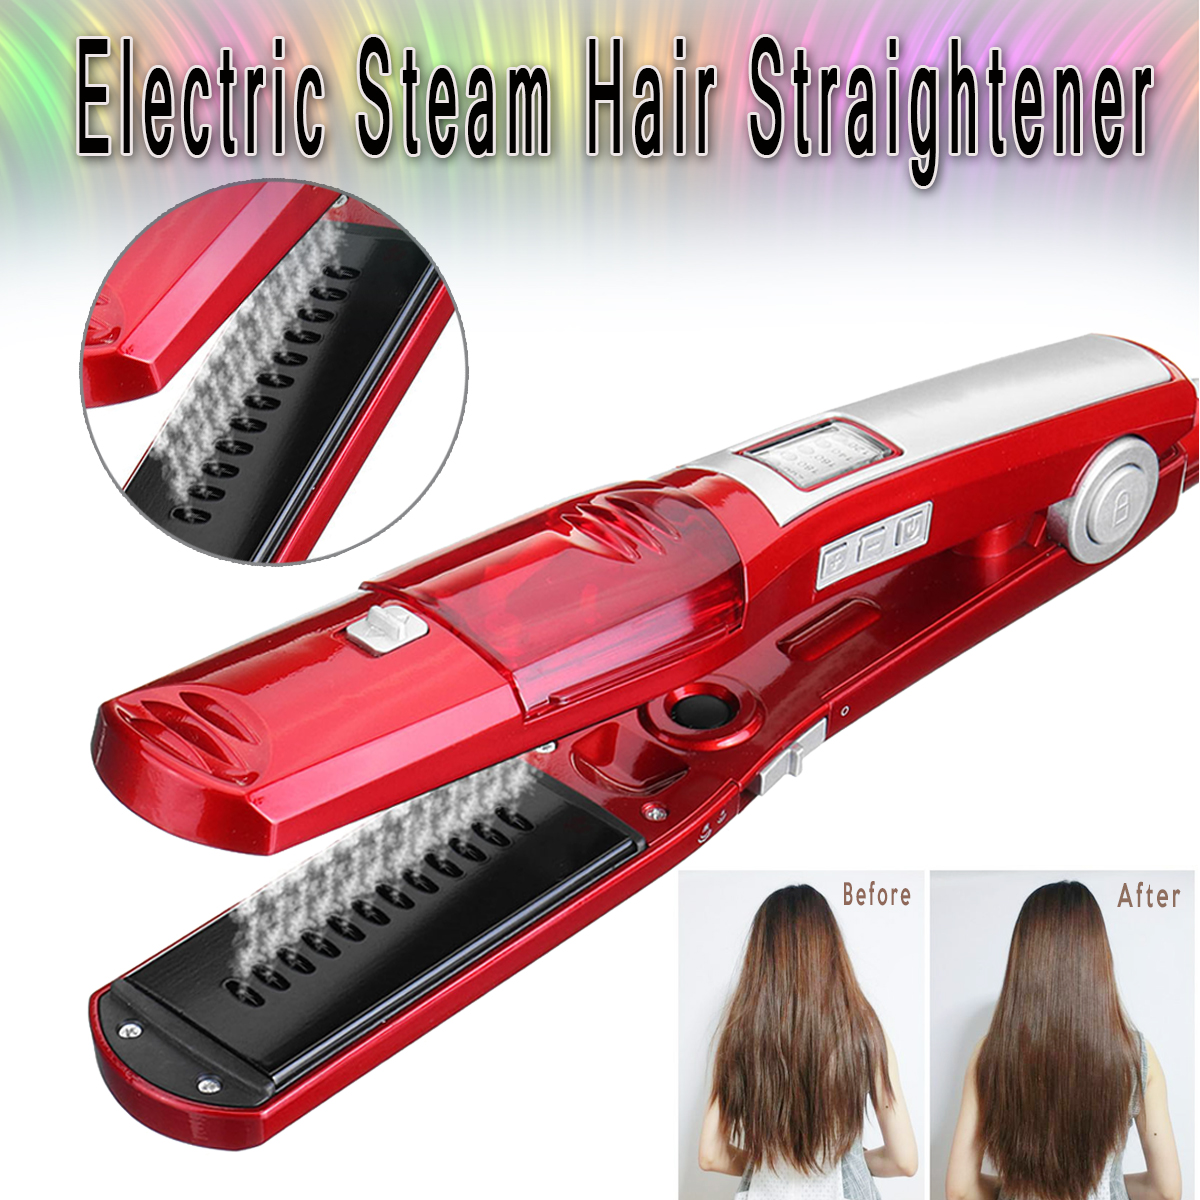 Professional Ceramic Steam Hair Straightener Brush Flat Iron Wet Dry Style Hair Straightener Iron professional electric hair straightener plat iron anion steaming dry wet use hair straightner curler styling tool